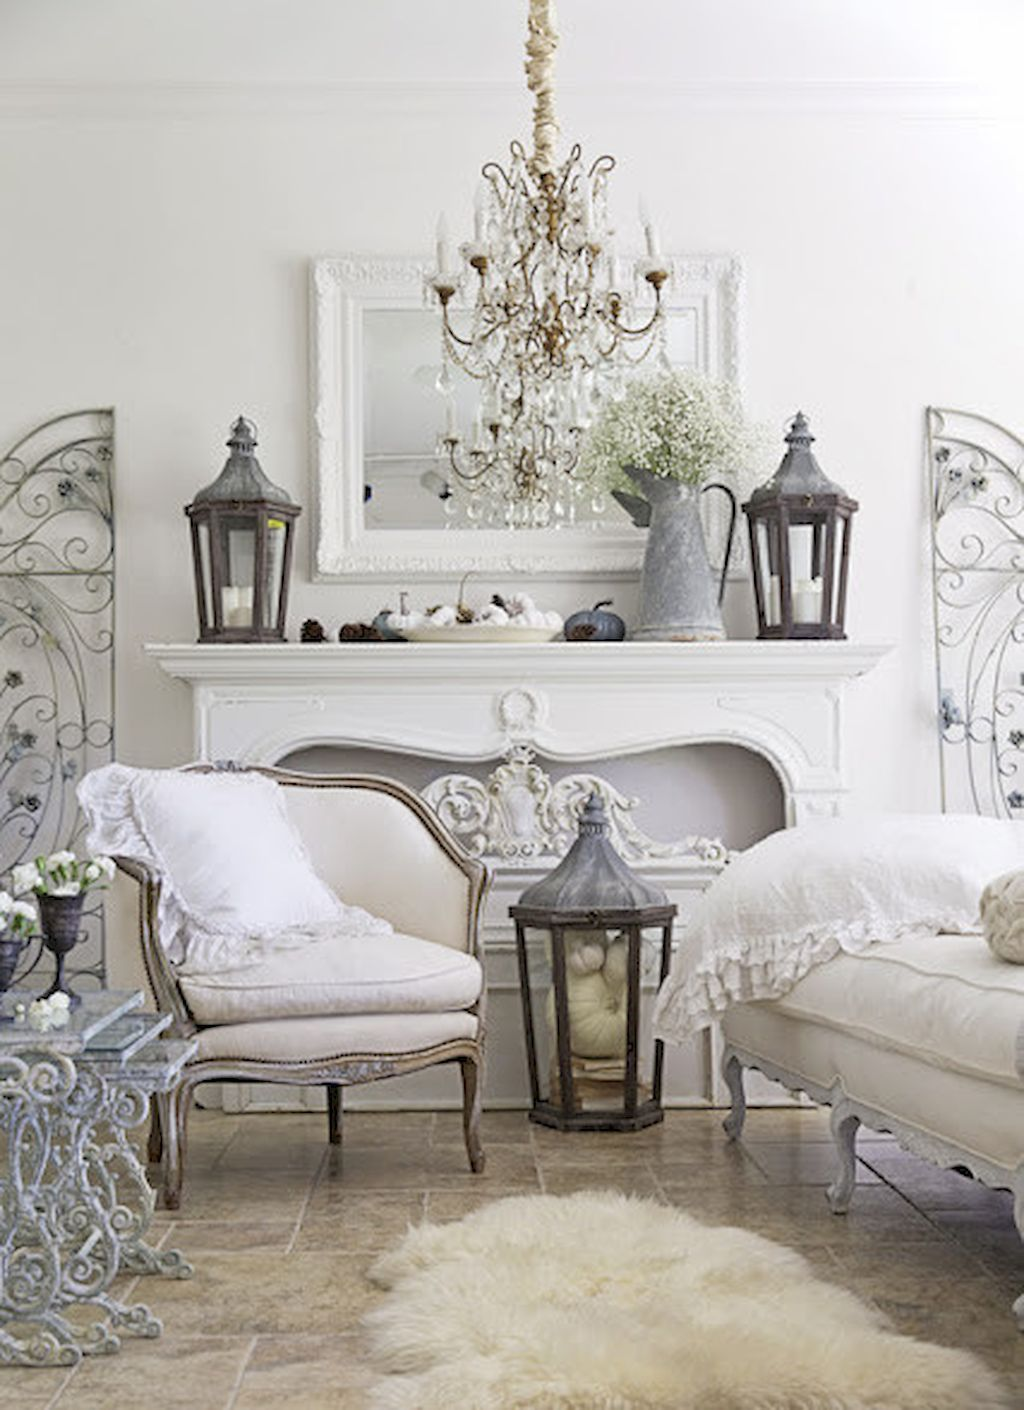 French country living room design ideas (19)  Déco shabby chic